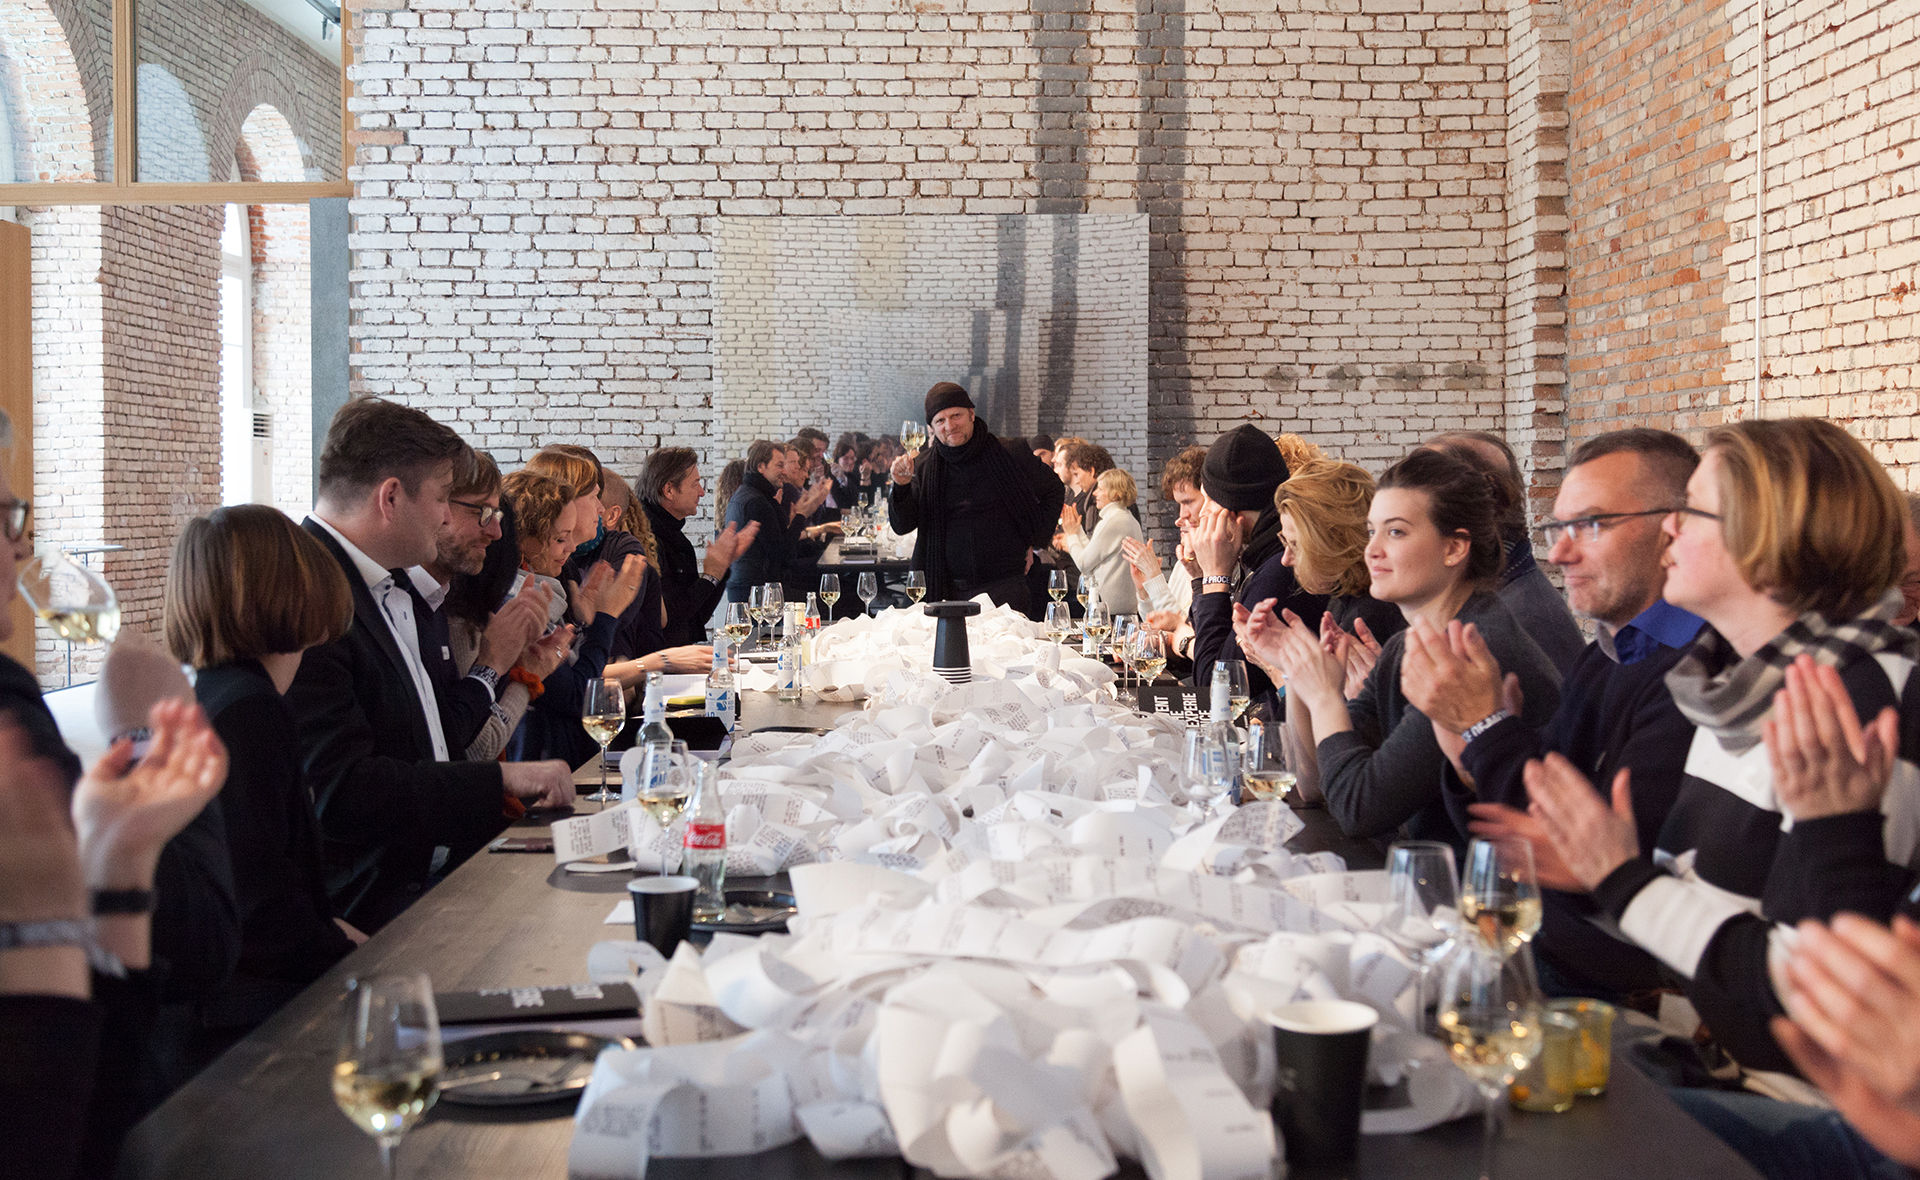 The participants clap while Designer Michael Keller stands at the end of the table and raises his glass.